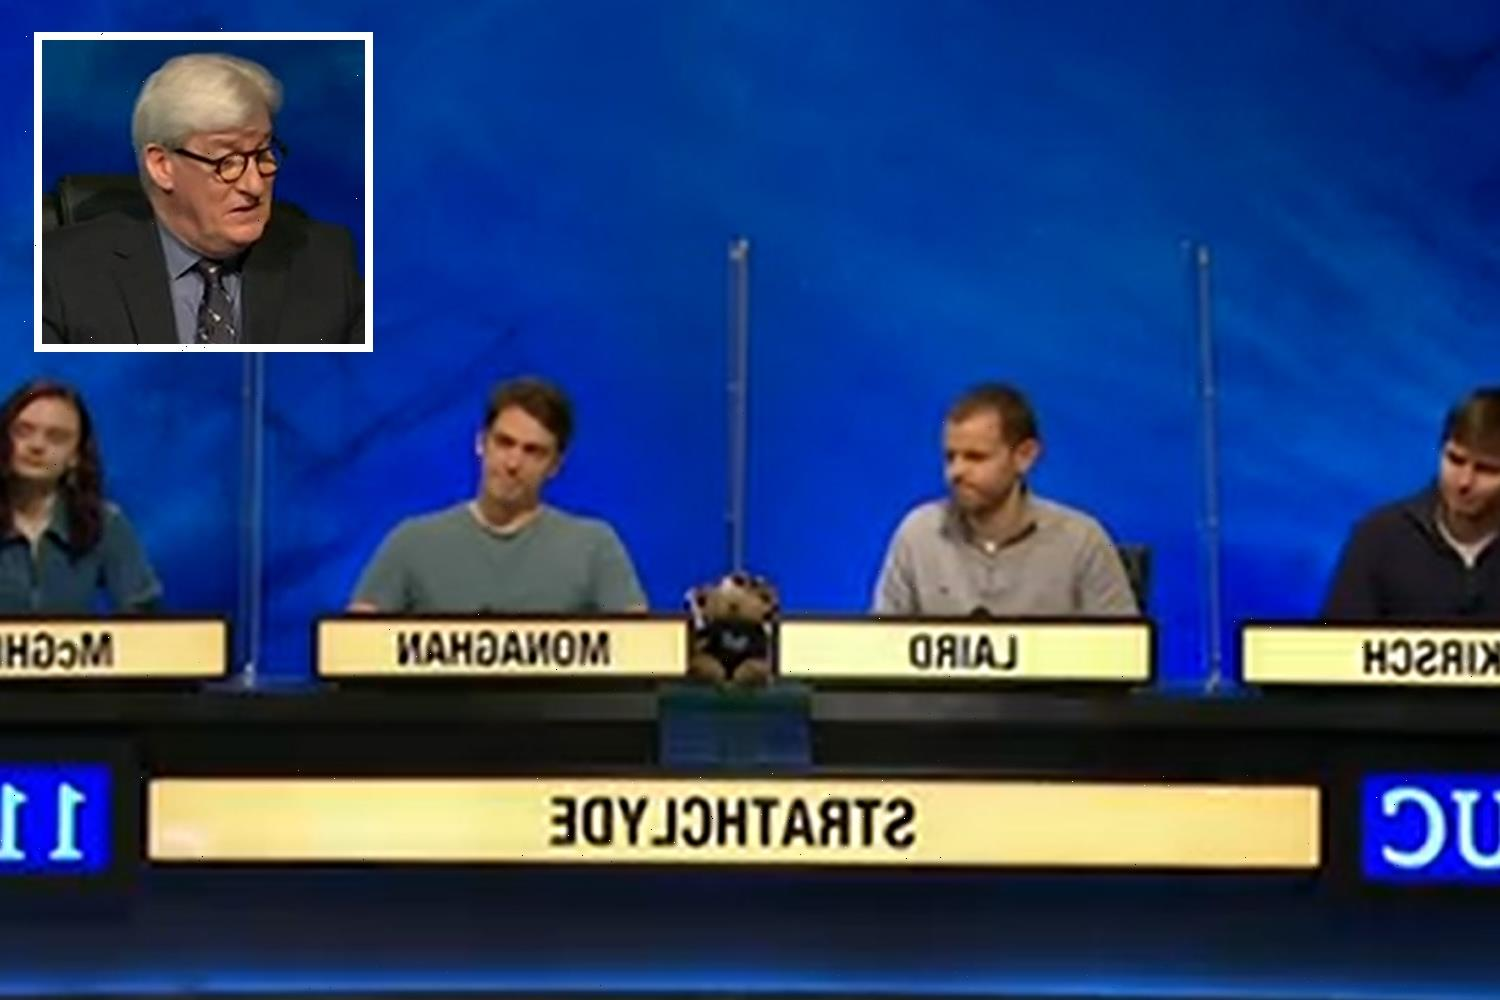 Jeremy Paxman leaves University Challenge viewers stunned with VERY rude swipe at losing team